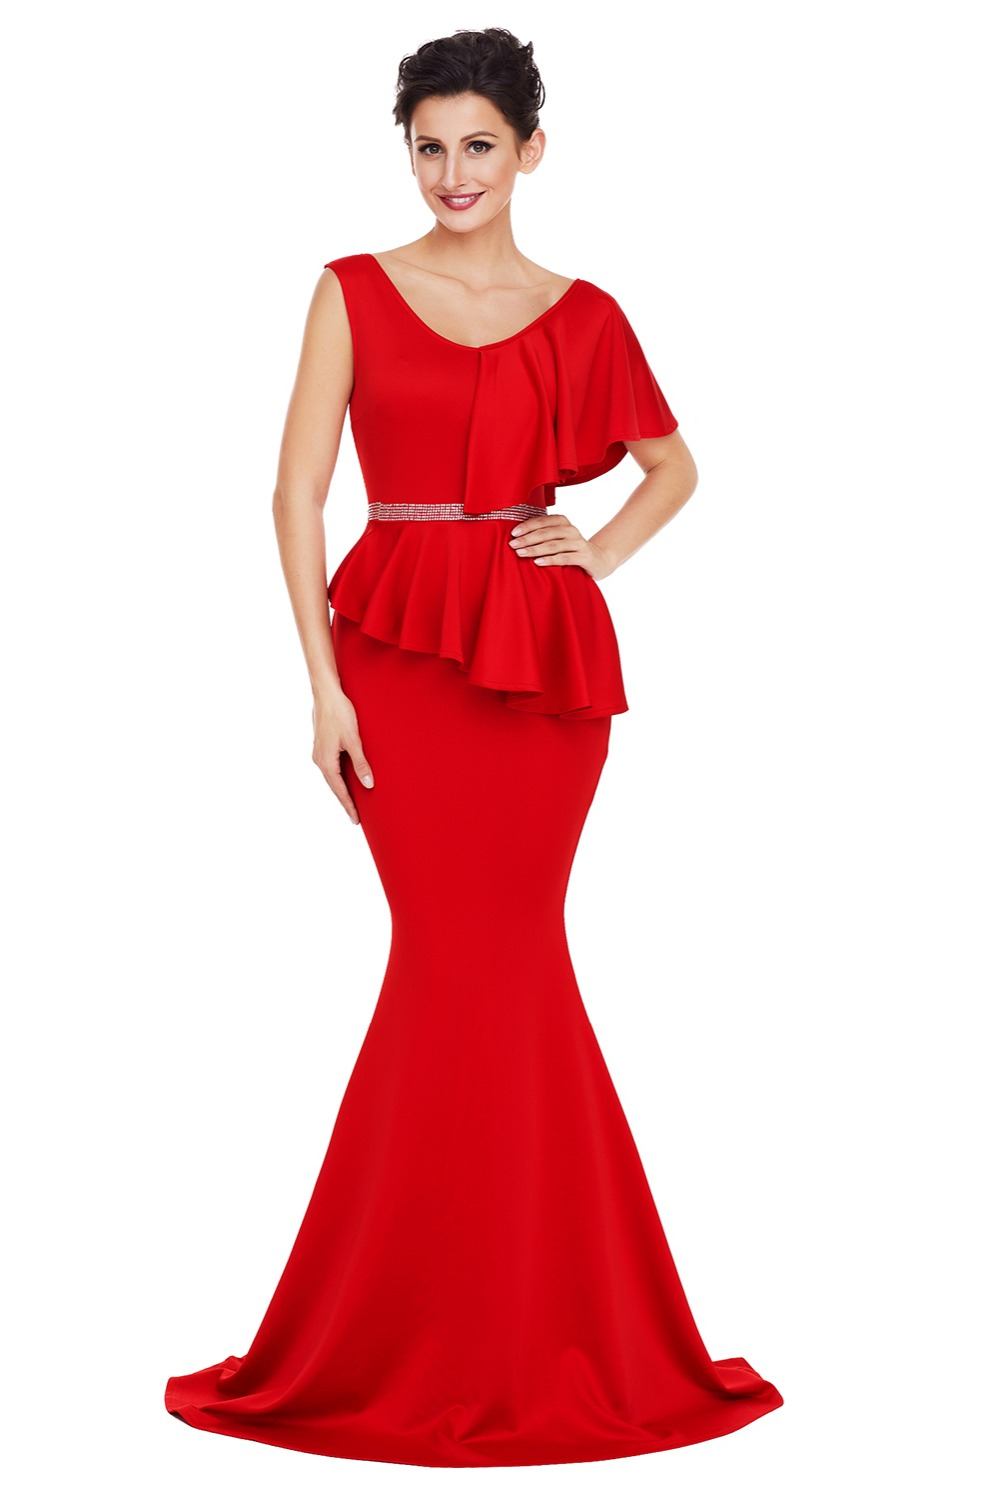 Royal Asymmetric Ruffle Peplum Mermaid Party Dress Elegant long sleeve evening gowns dresses women long sleeve evening gown Sale